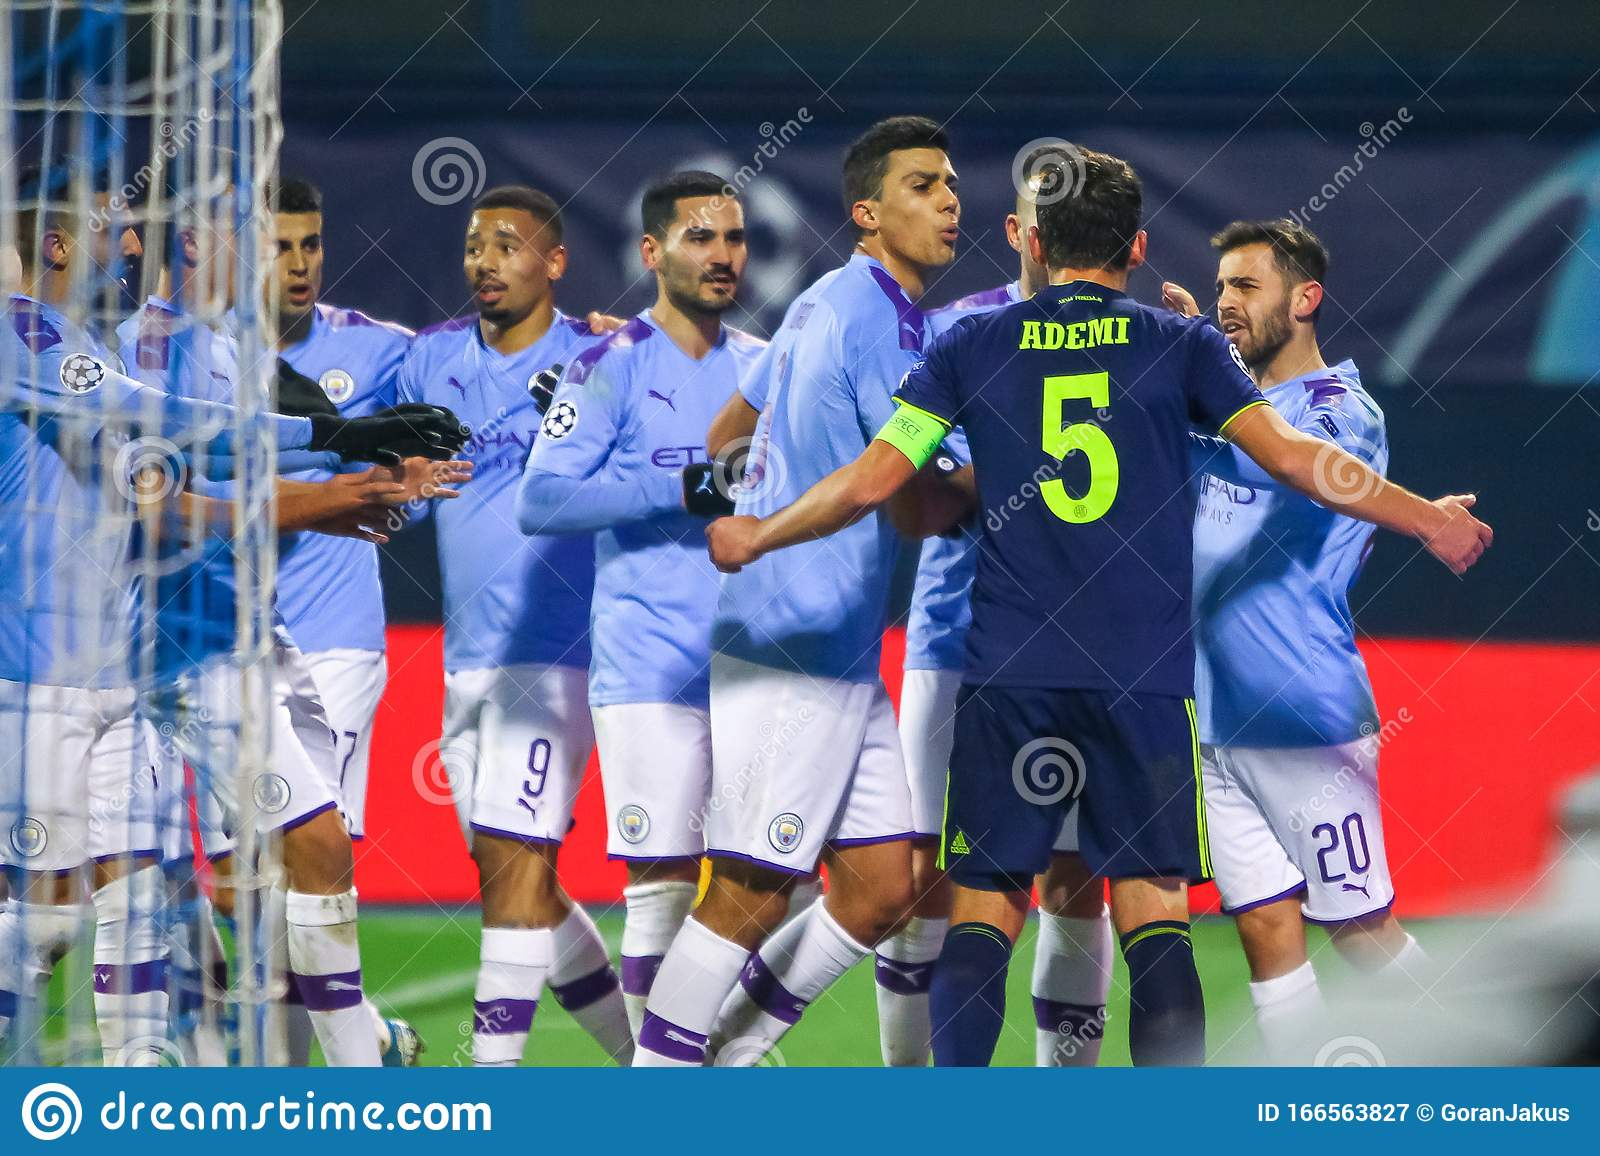 Dinamo Zagreb Vs Manchester City Editorial Photography Image Of League Adult 166563827